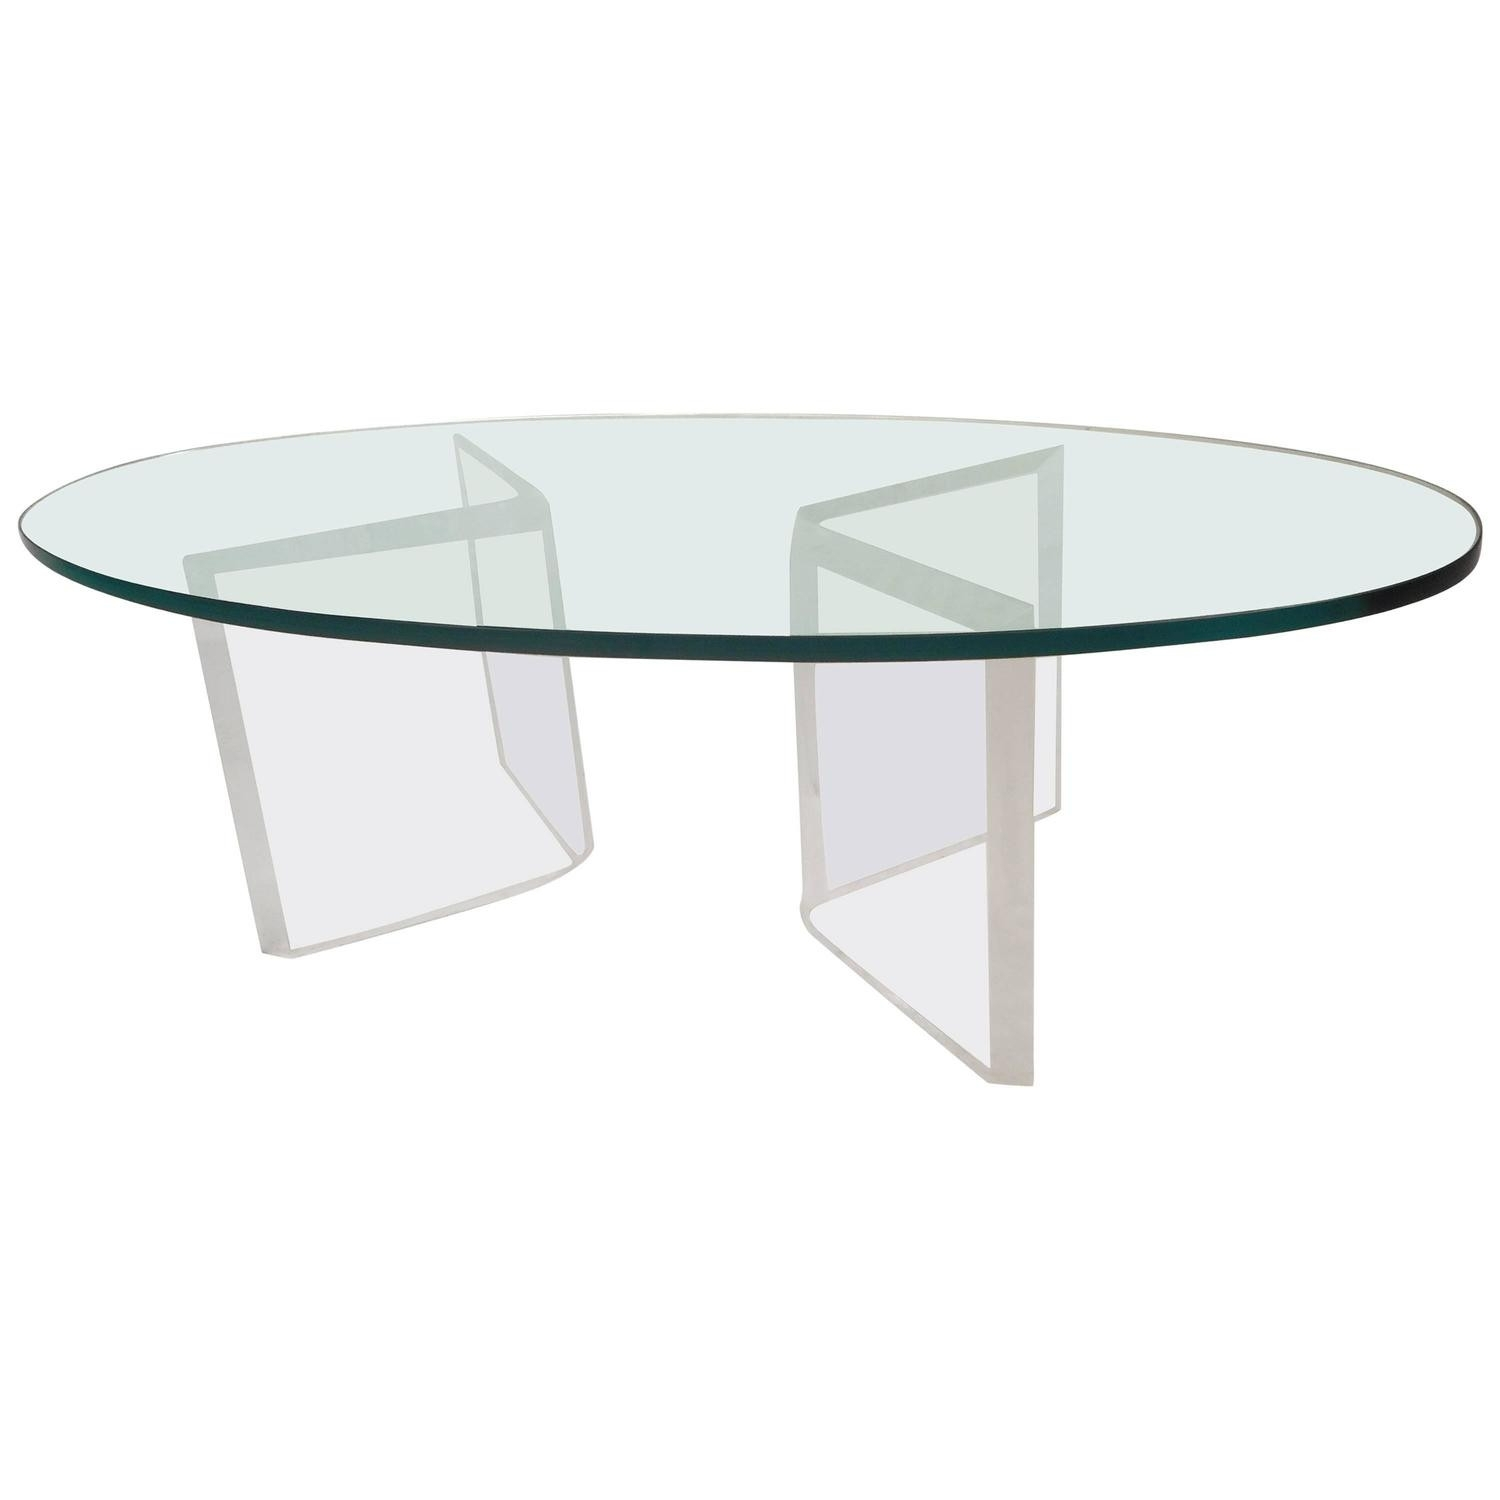 Acrylic Coffee Table For Sale New Mid Century Modern Occasional in Modern Acrylic Coffee Tables (Image 3 of 30)